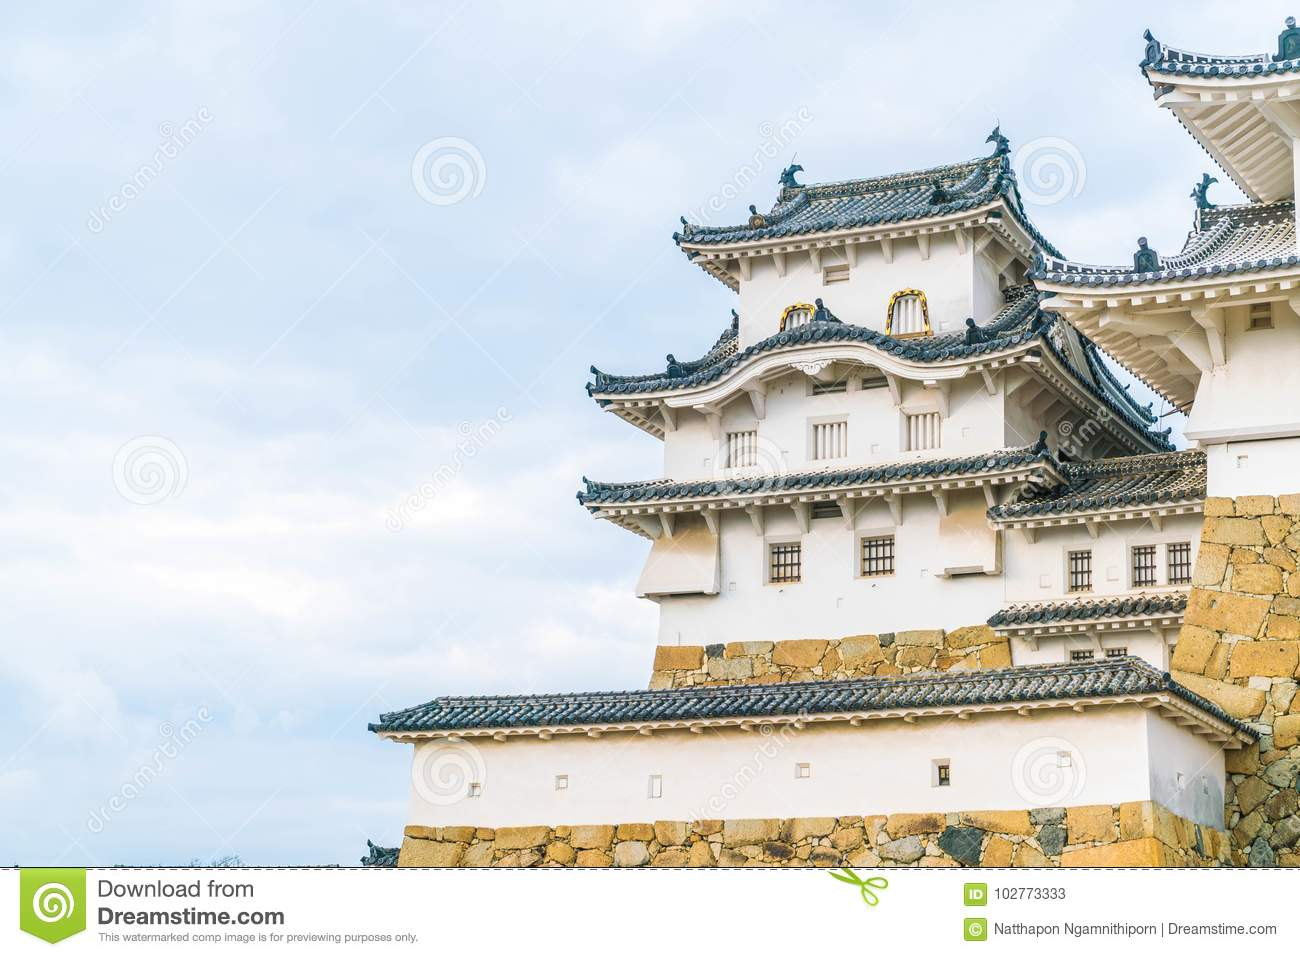 Himeji castle in hyogo prefecture japan unesco world heritage download comp publicscrutiny Choice Image